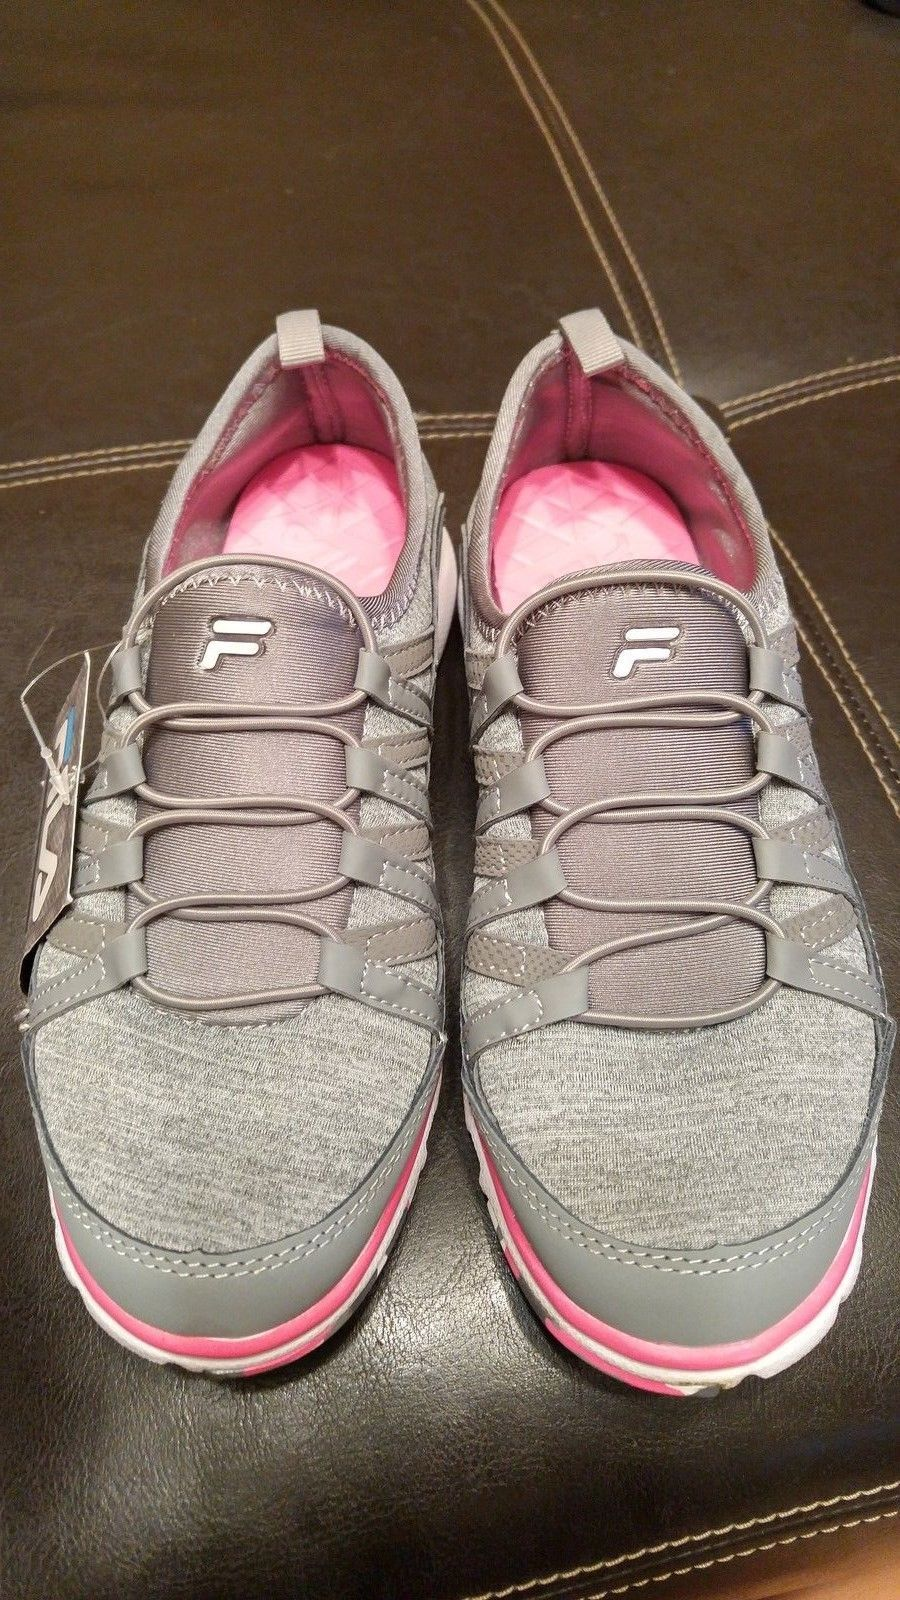 New Fila Slip on Shoes Sneakers w/ Memory Foam 6 Womens Gray Pink